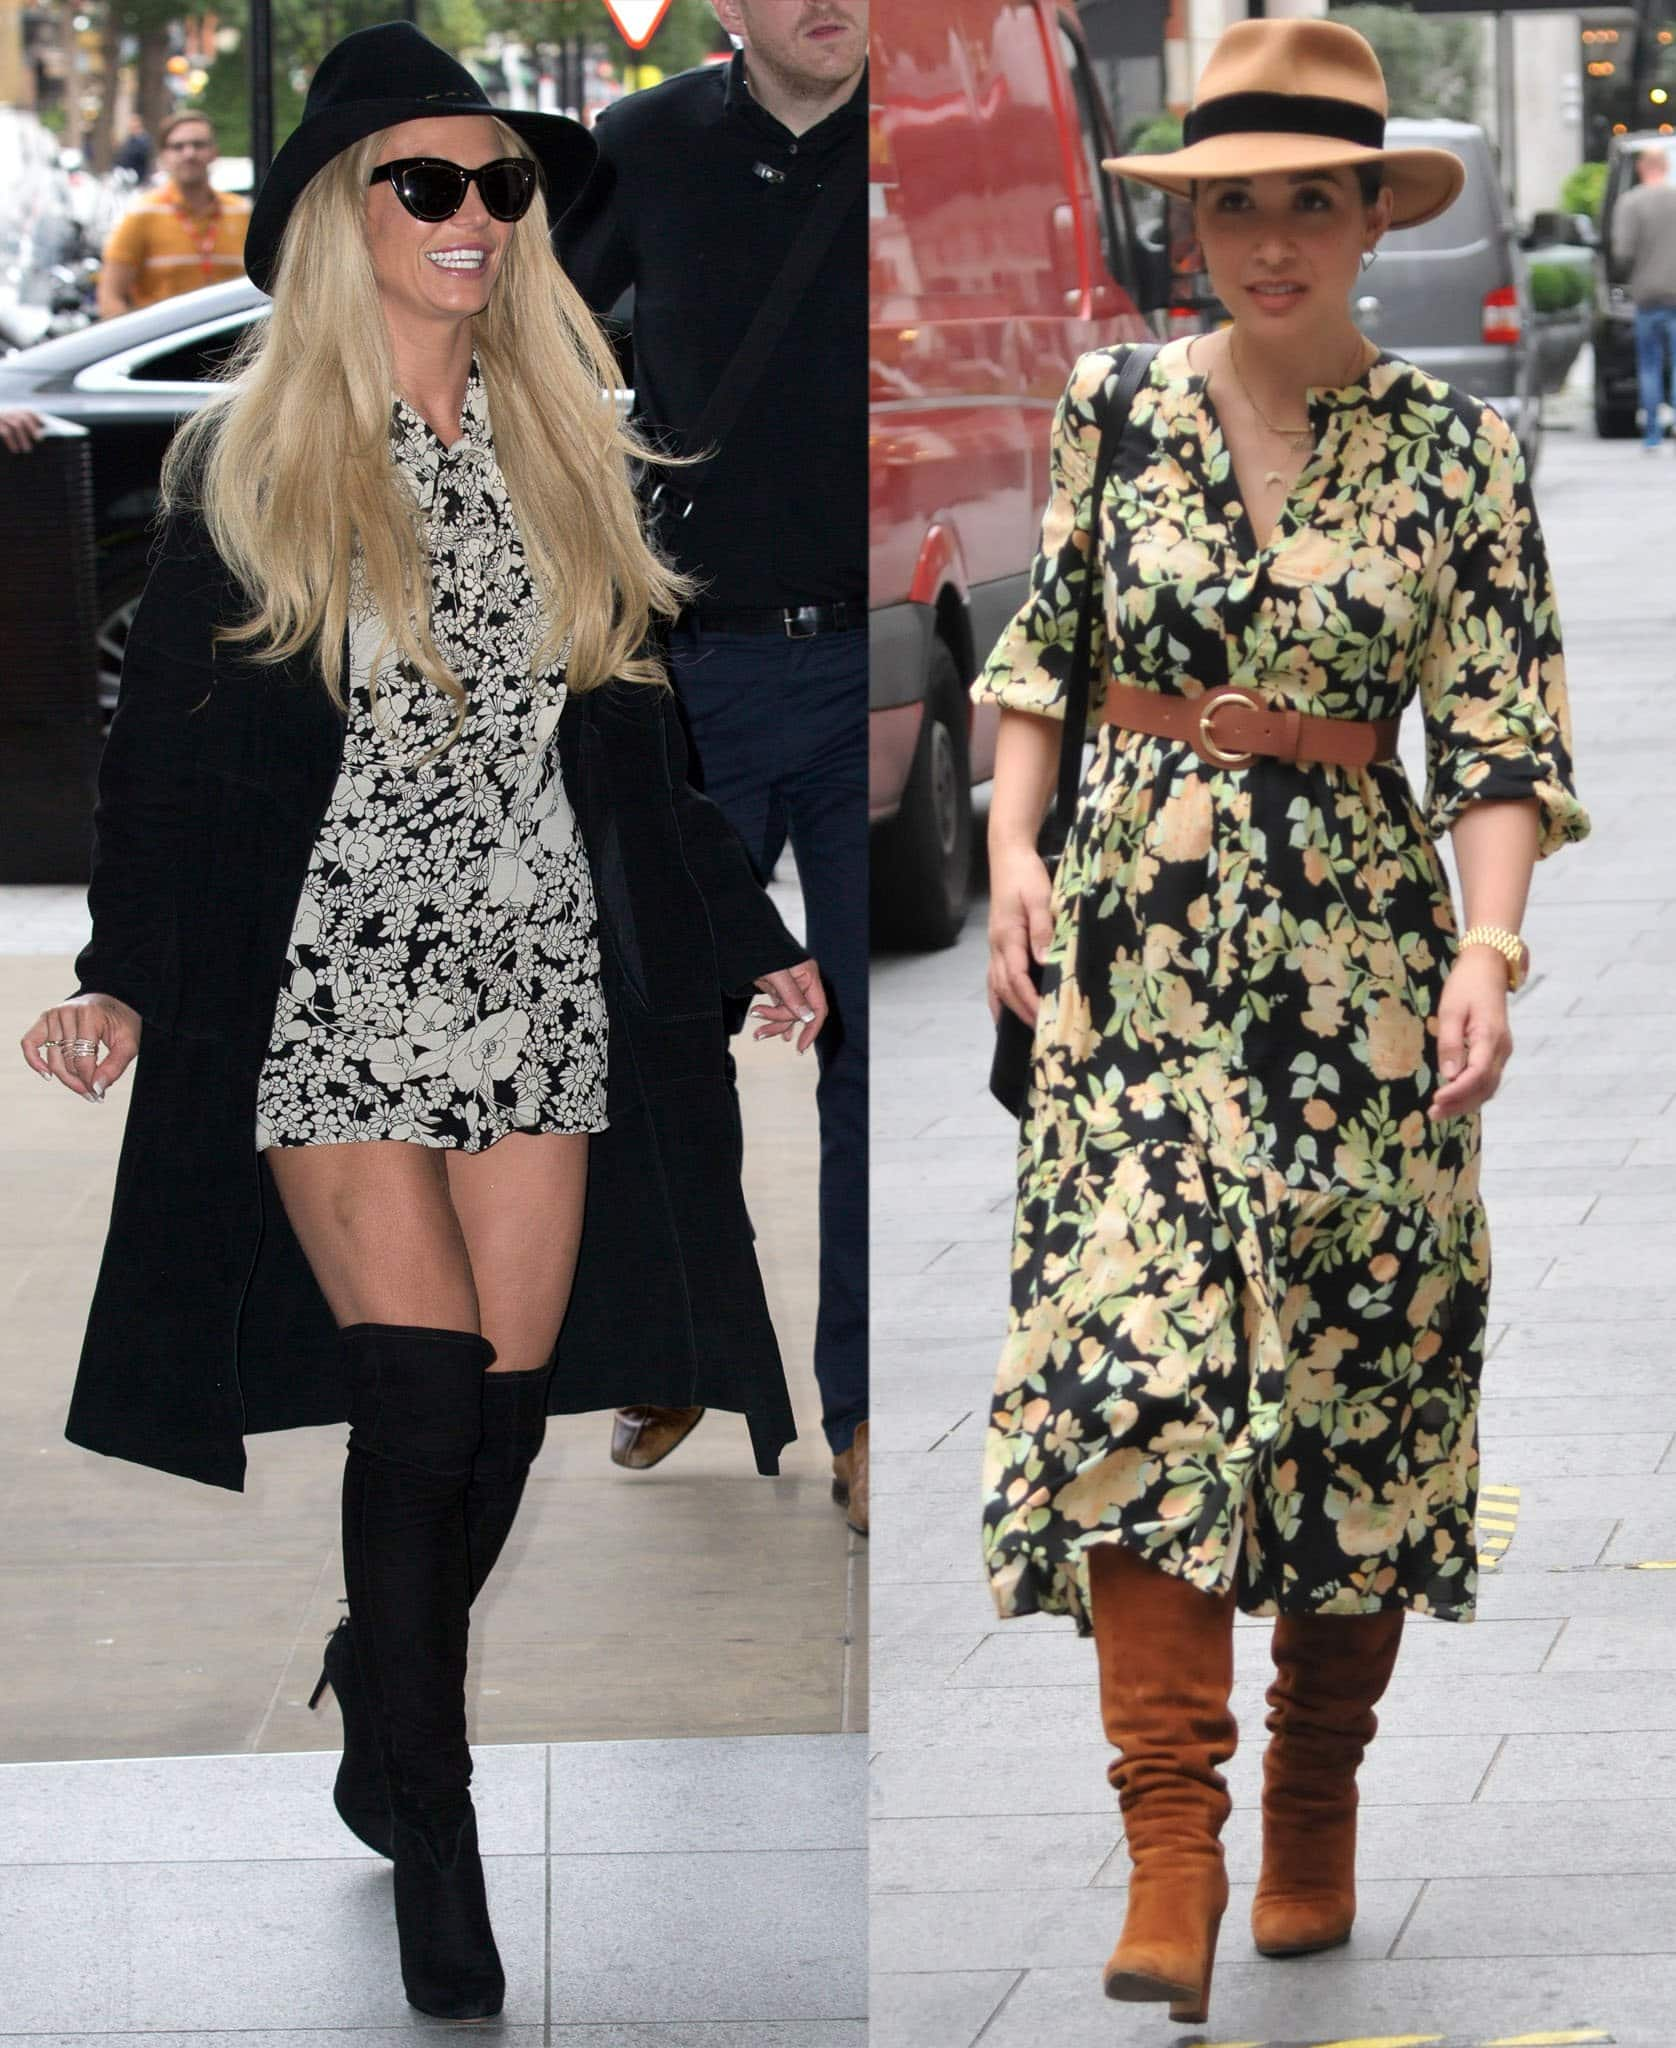 Britney Spears and Myleene Klass go bohemian chic in floral dresses and knee-high boots